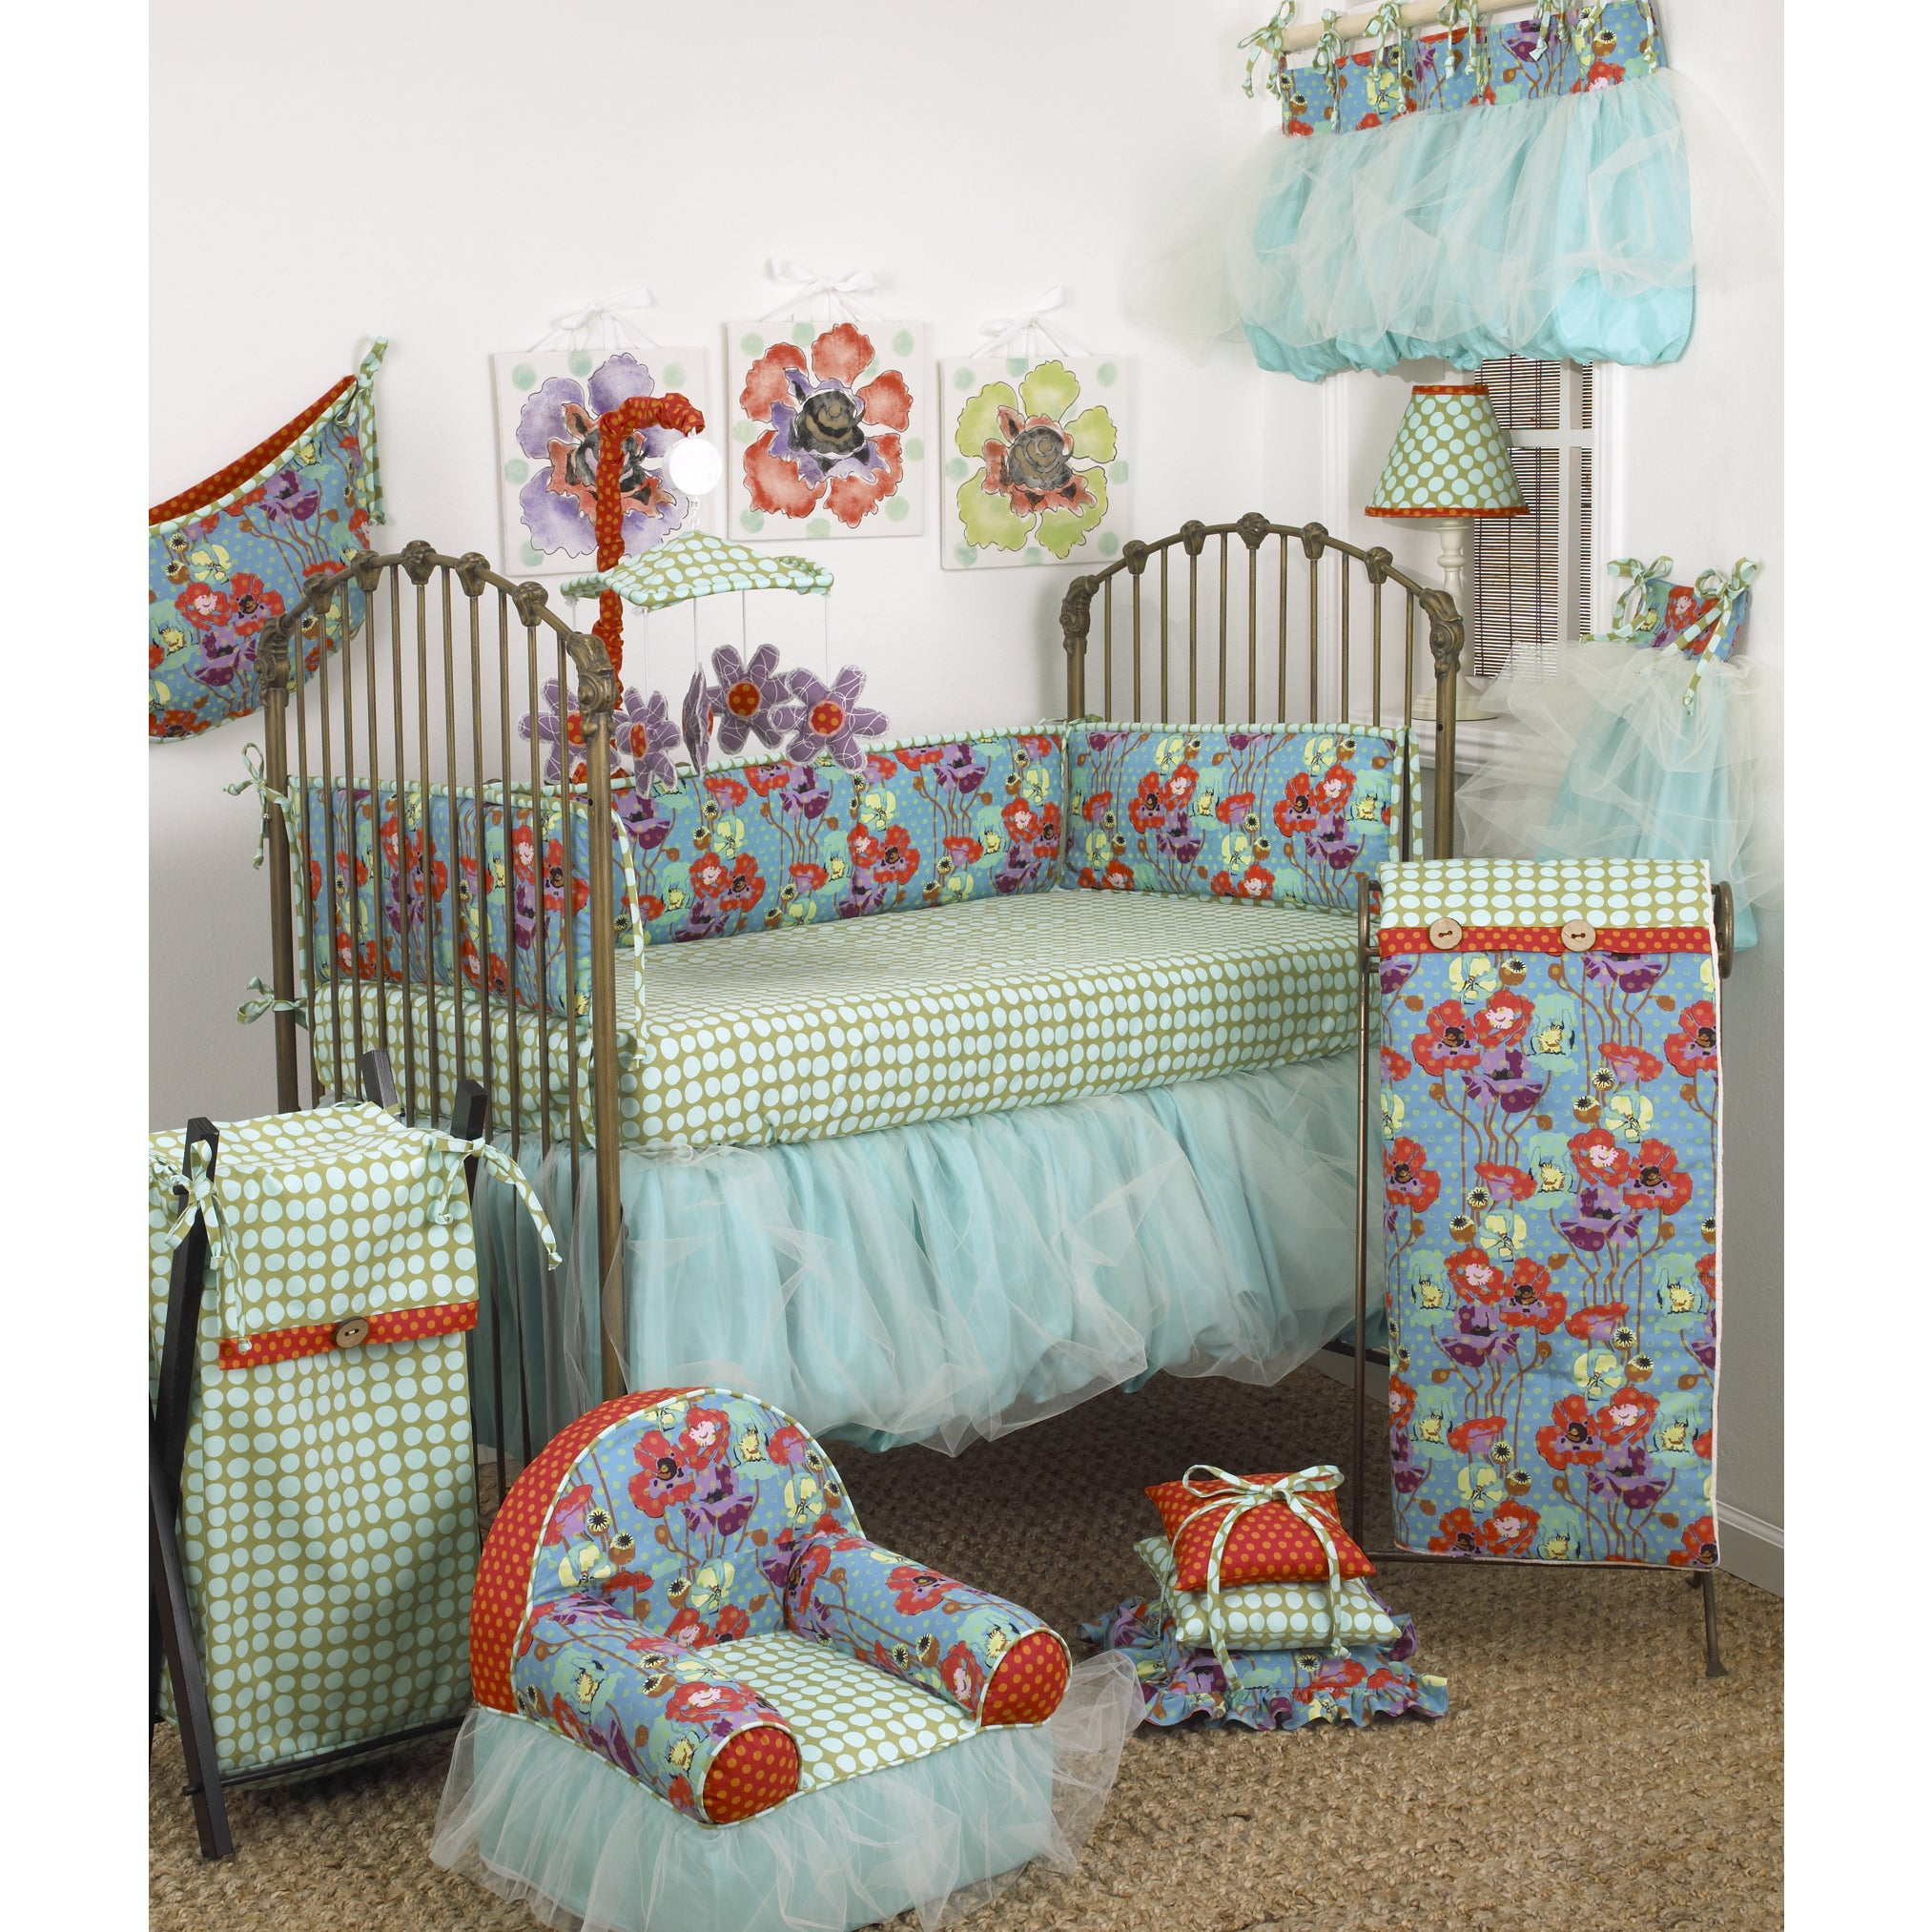 Shop Cotton Tale Lagoon Cotton 8 Piece Baby Bedding Set Overstock 12832565